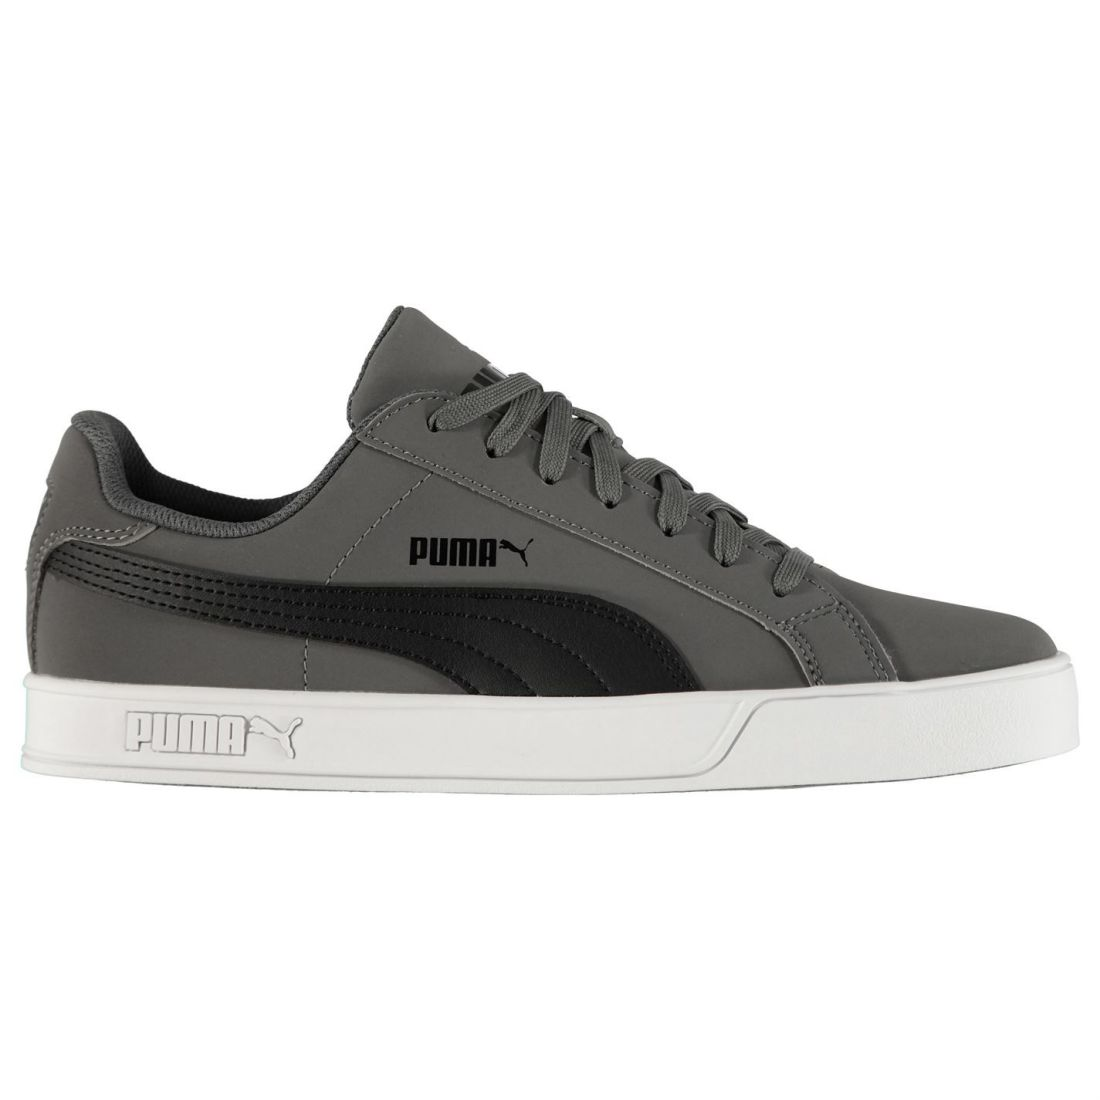 PUMA Smash Vulc Men s SNEAKERS Shoes 359622 07 Grey UK 9 for sale ... f25a320b6